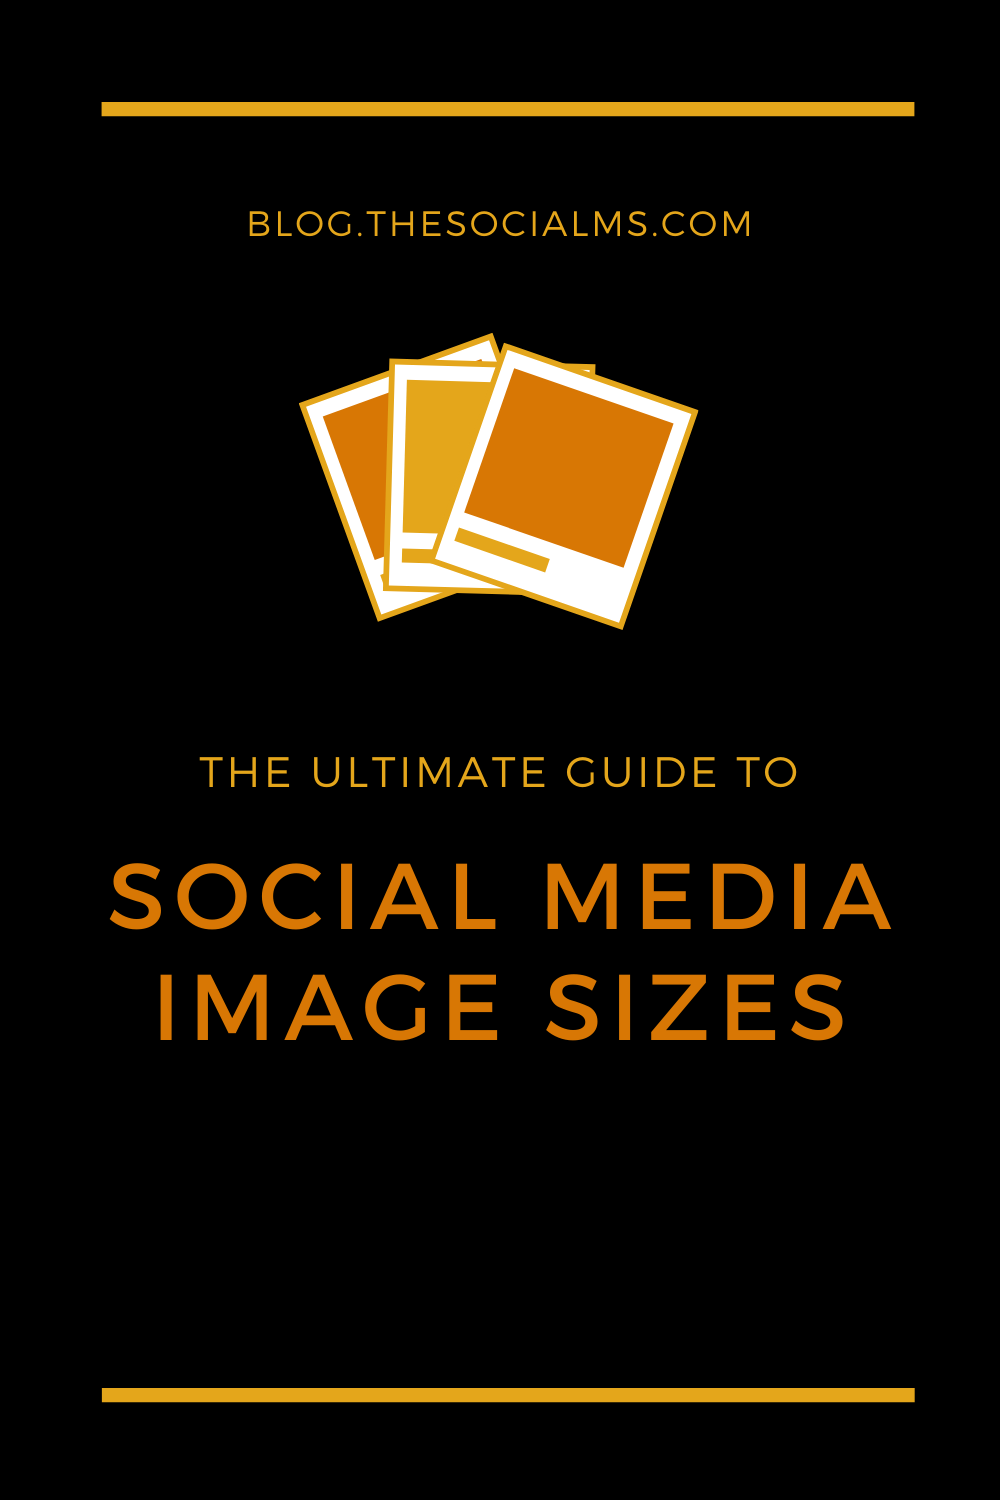 Social media image sizes are one of the major factors that decide whether your post gets the attention you hoped for. Here are the social media image sizes you need to know. #socialmediaimages #socialmediaimagesize #socialmedia #socialmediamarketing #socialmediatips